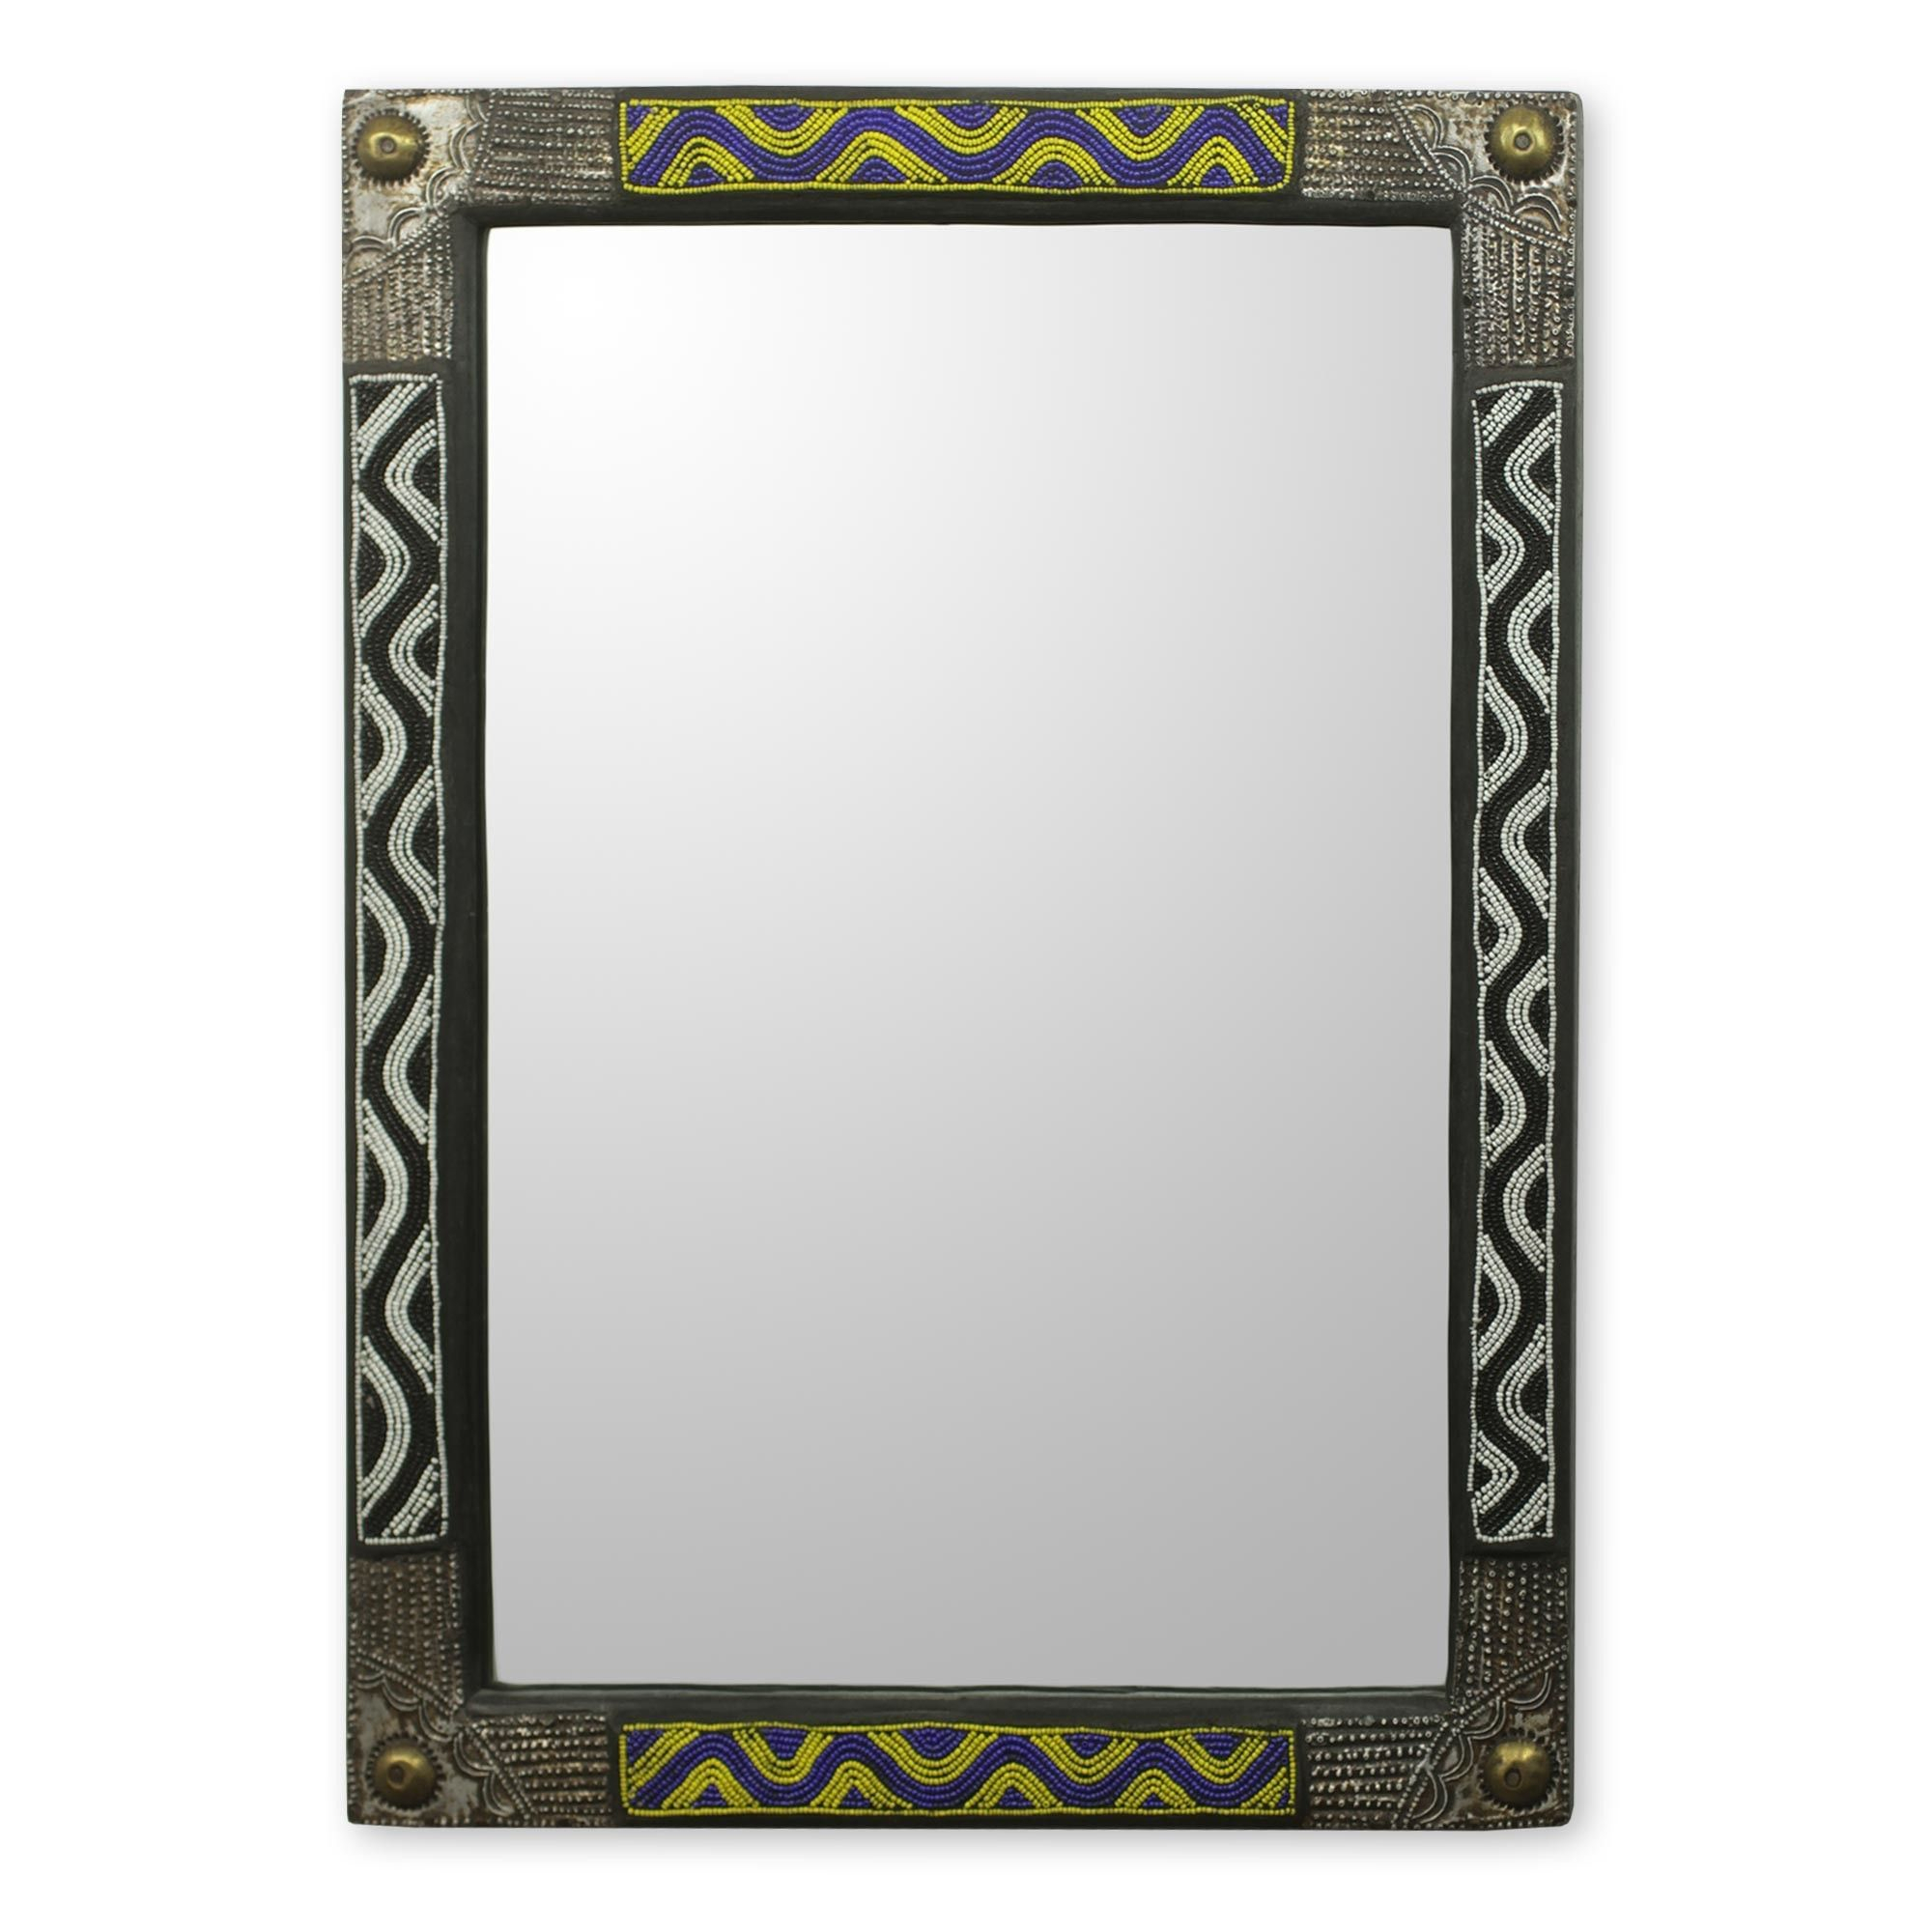 Ahoufe Ii African Beaded Wood Frame Wall Mirror With Metal Throughout Beaded Accent Wall Mirrors (View 1 of 30)